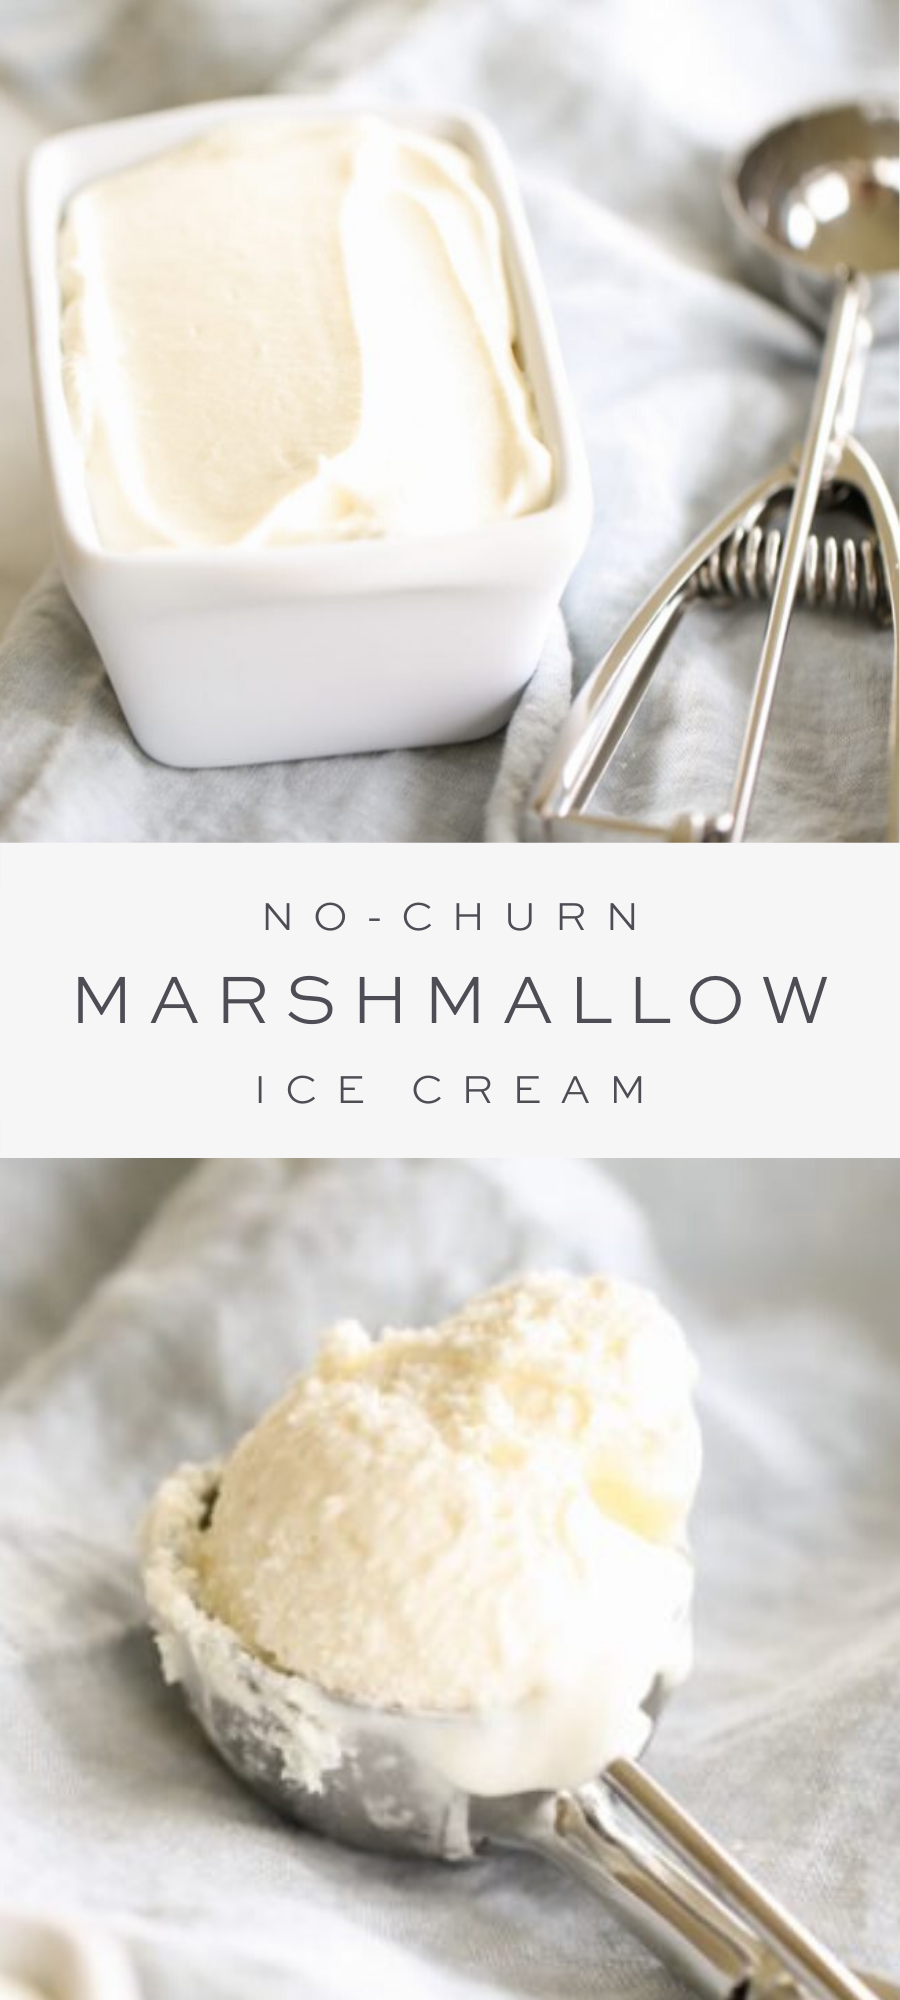 3 Ingredient Marshmallow Ice Cream Recipe